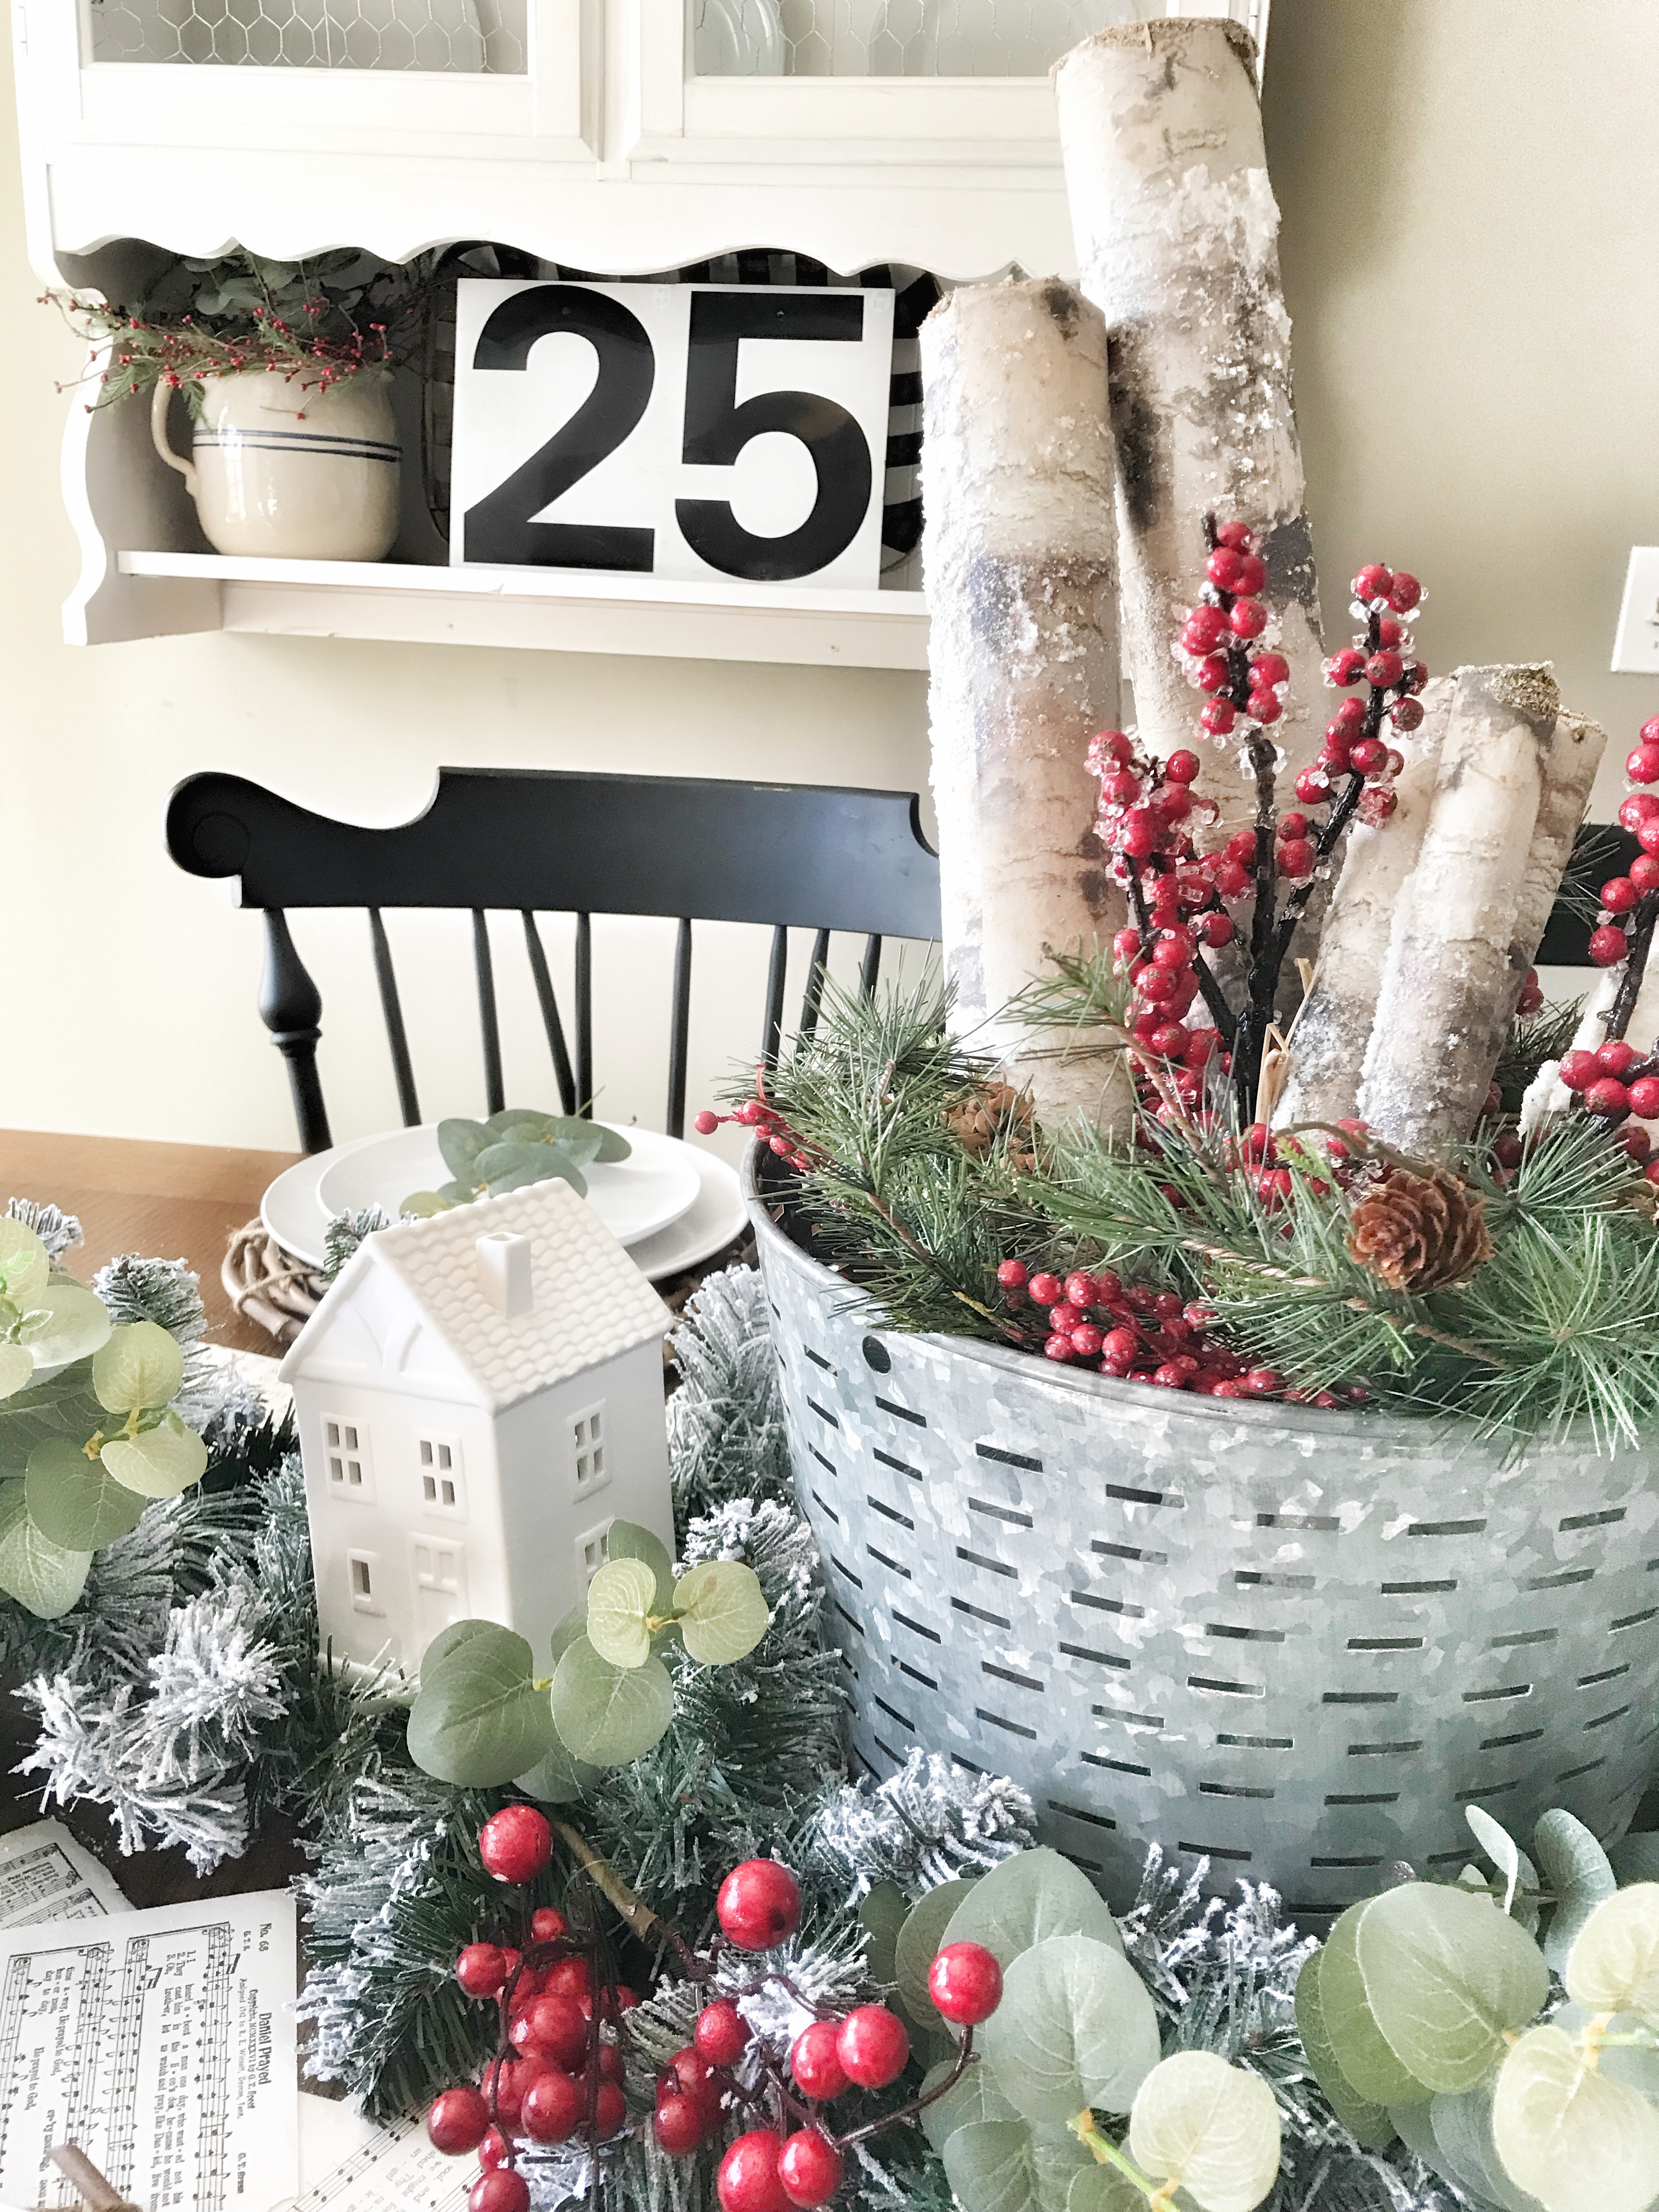 Christmas table decor with white cottages and garland